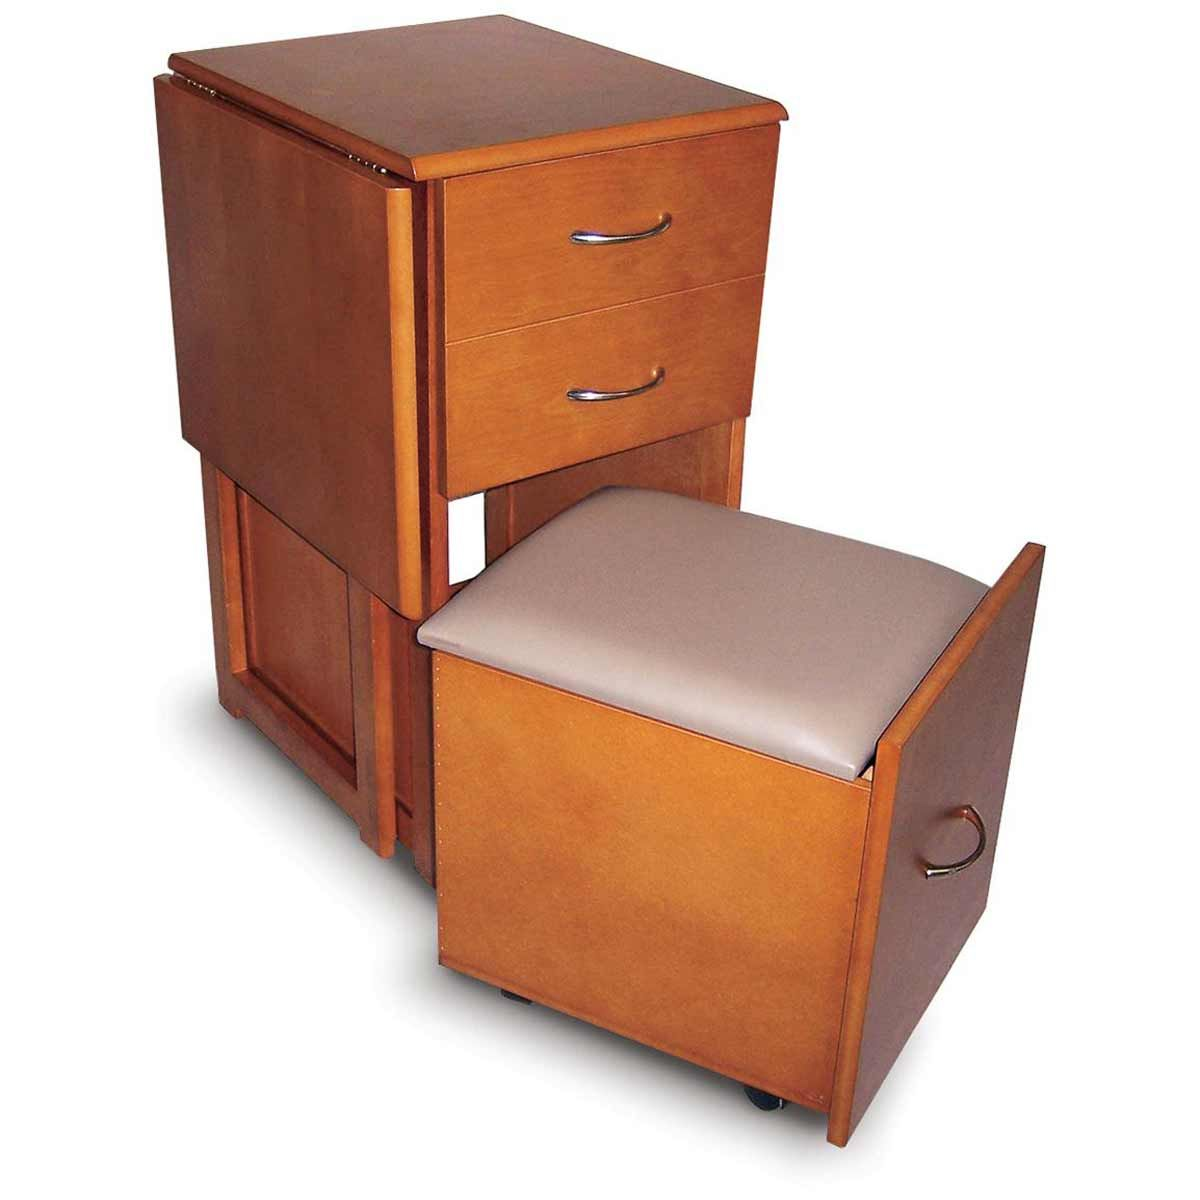 space saver desk and stool with two drawers storage in the stool fold up side for more work. Black Bedroom Furniture Sets. Home Design Ideas